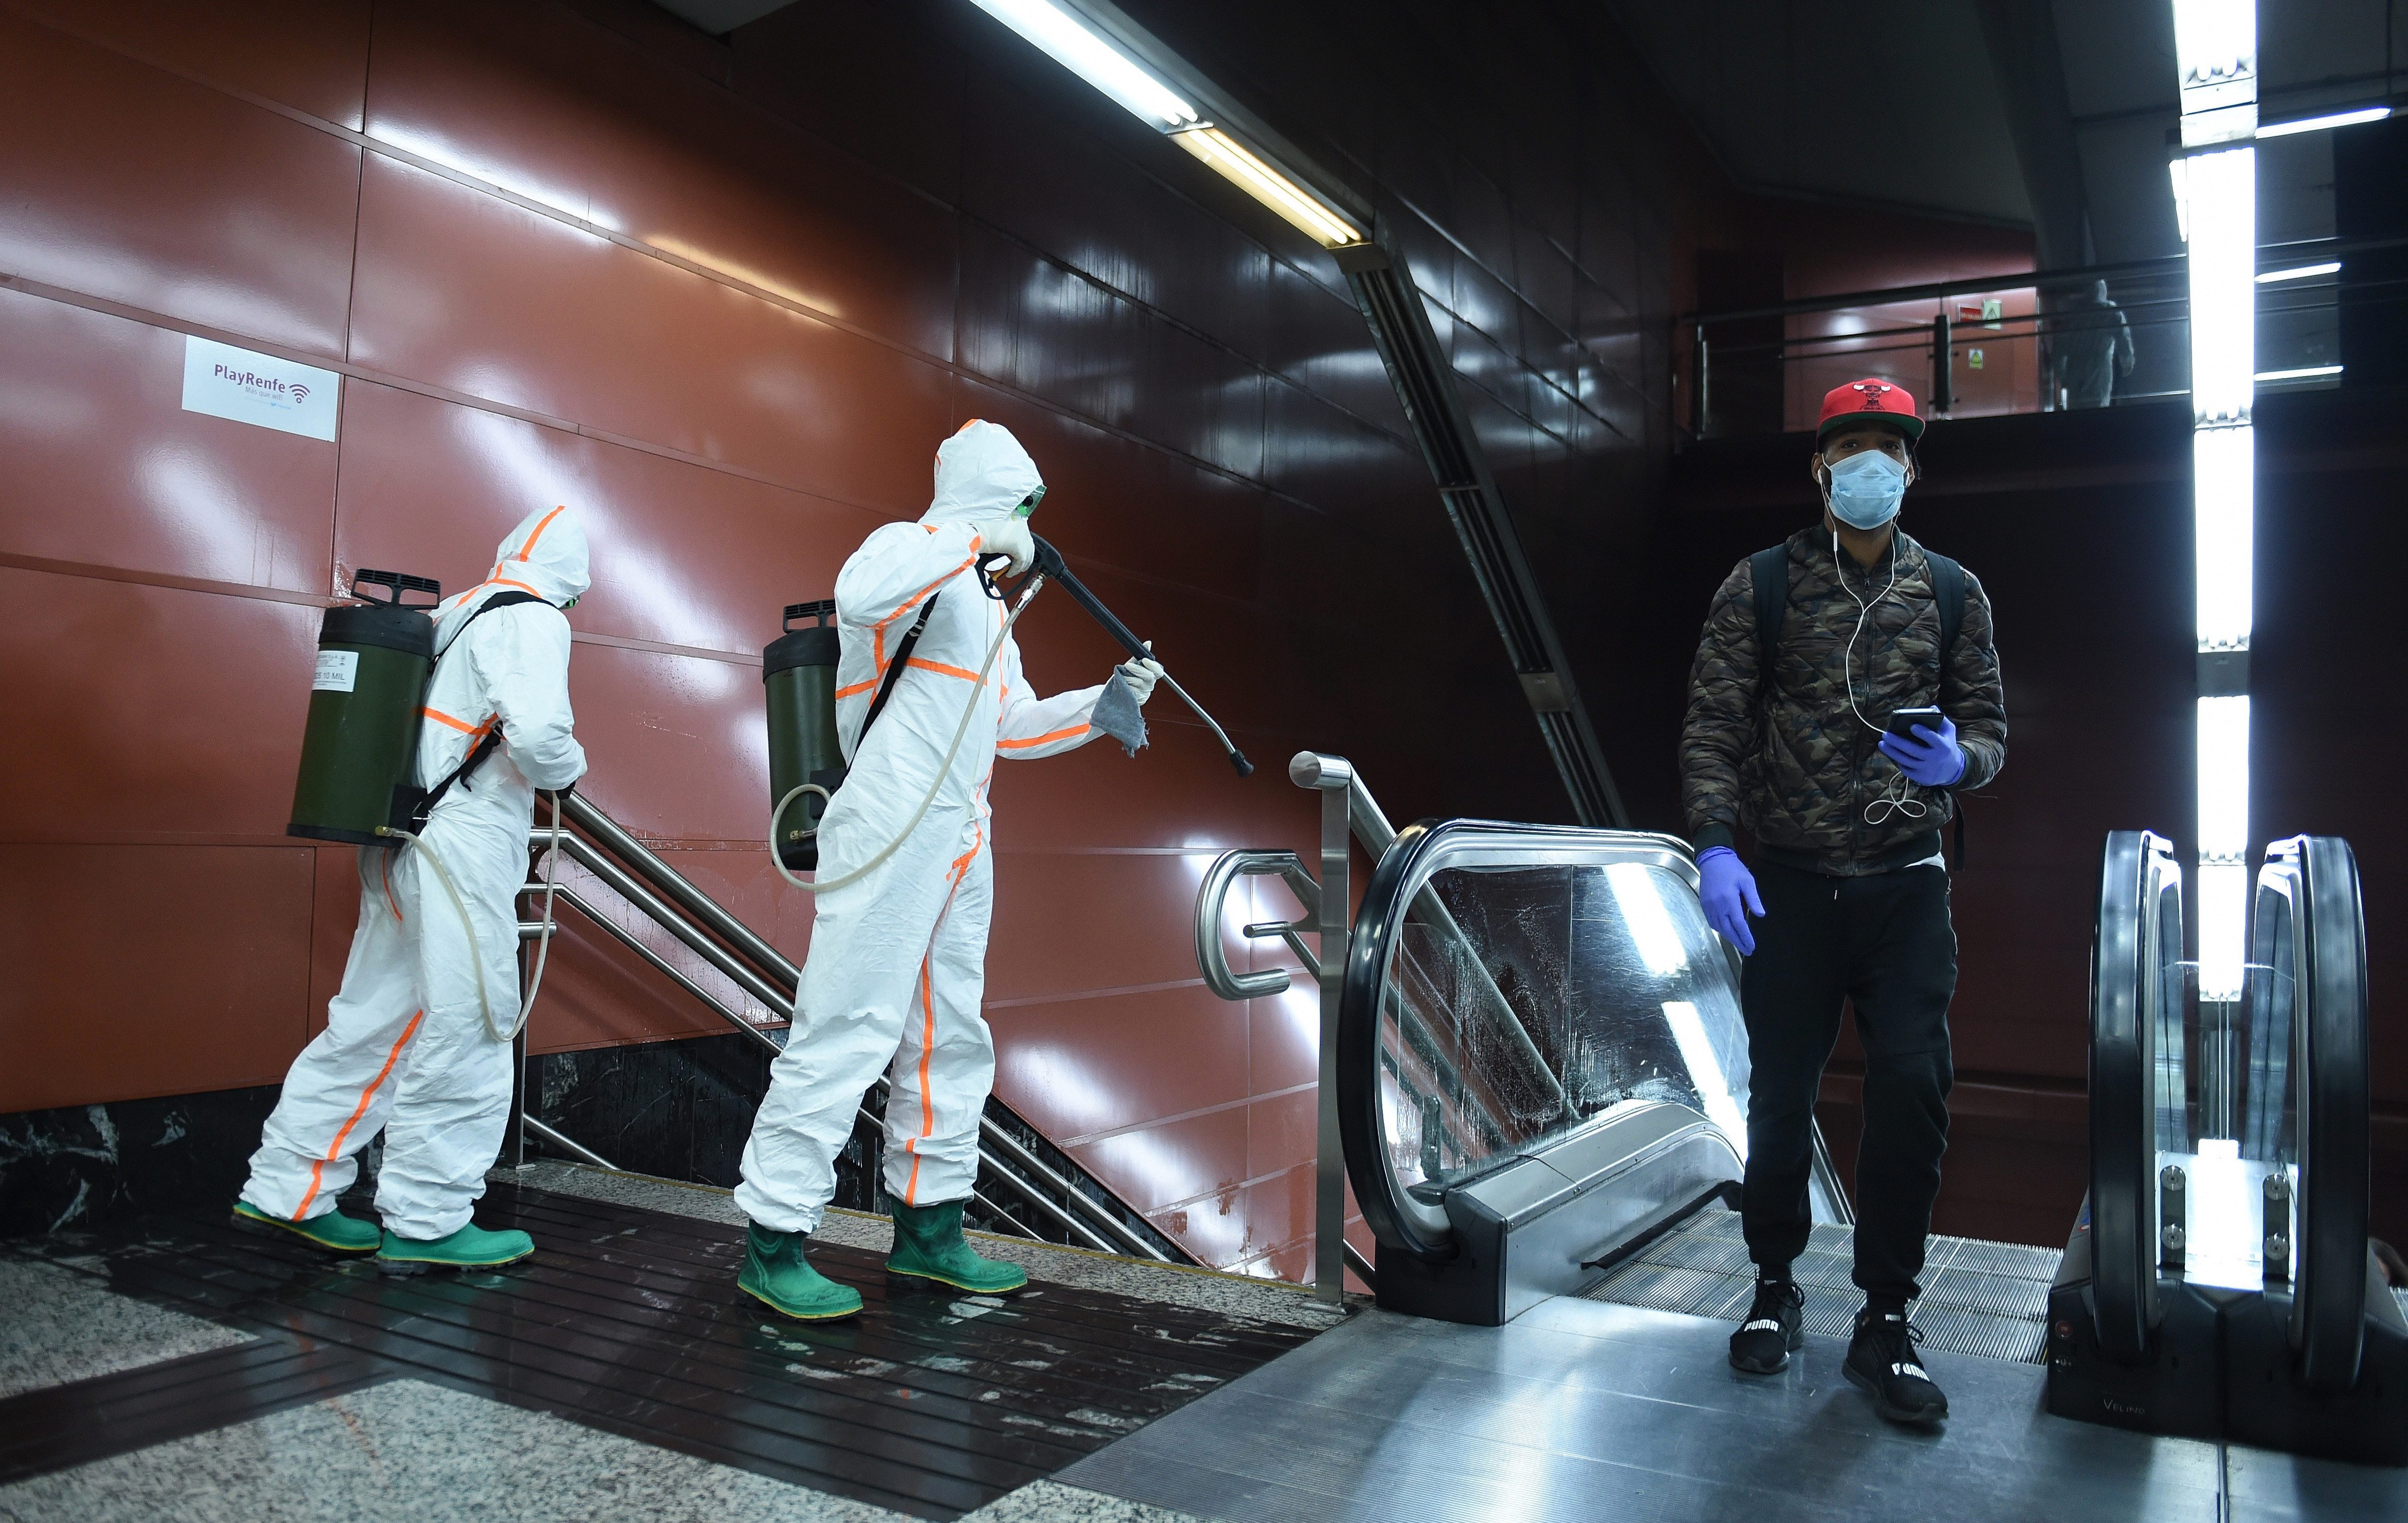 Workers are seen disinfecting a public escalator in Madrid, Spain